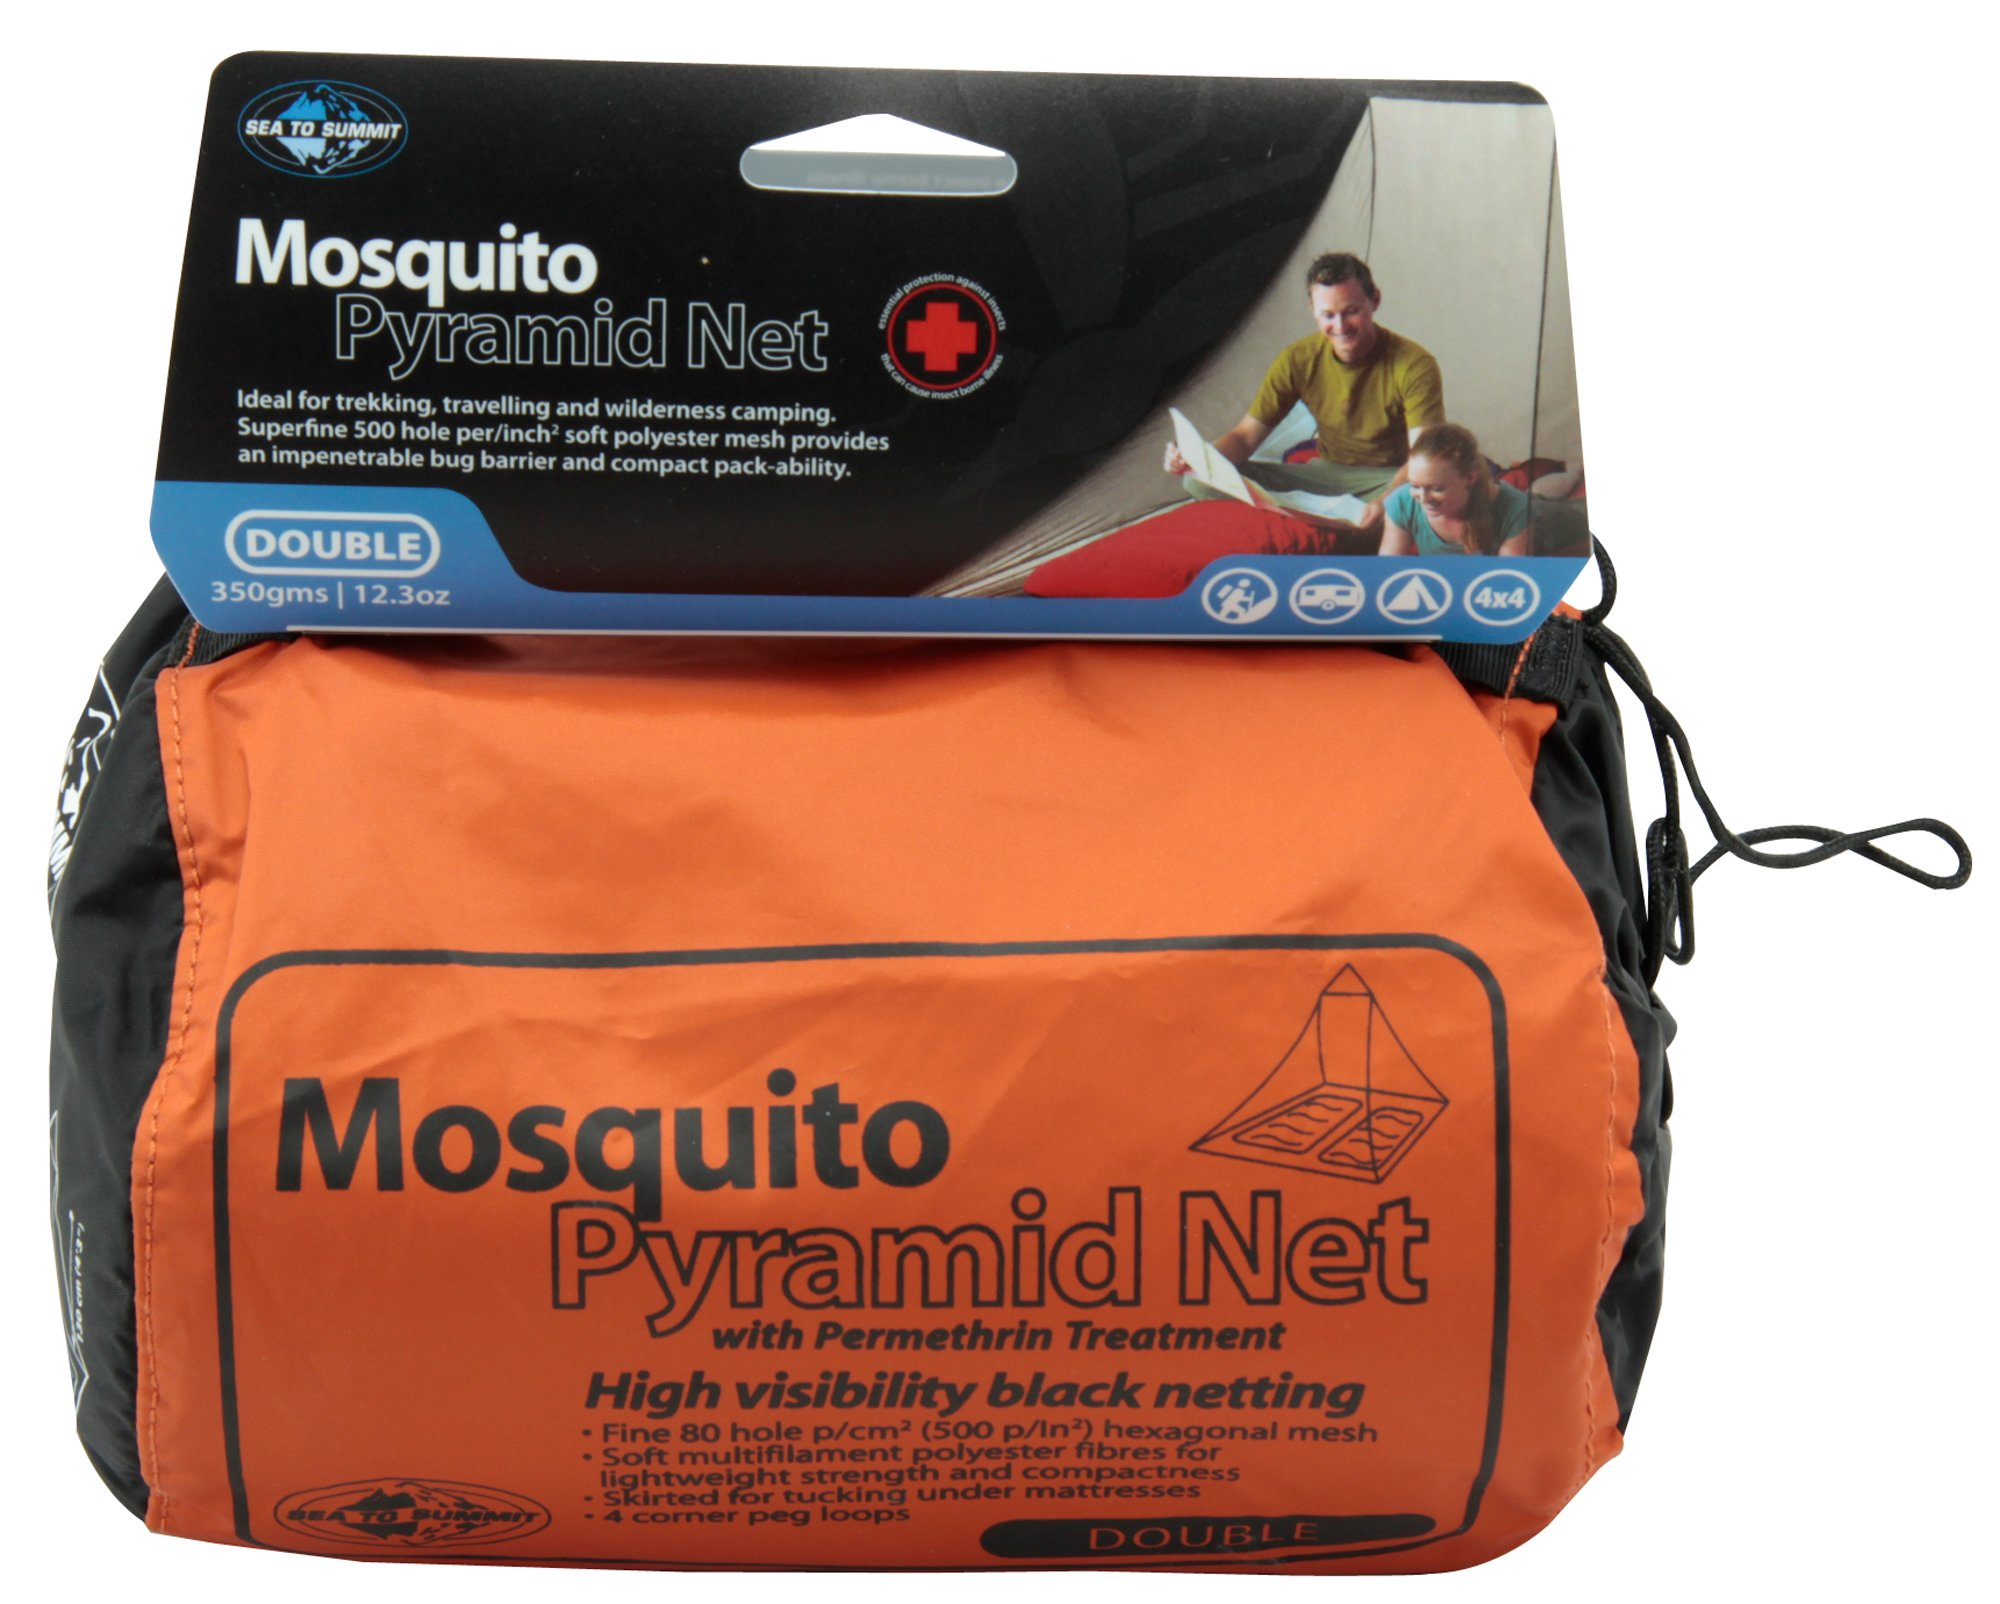 SEA TO SUMMIT MOSQUITO NET WITH PERMETHRIN (DOUBLE)